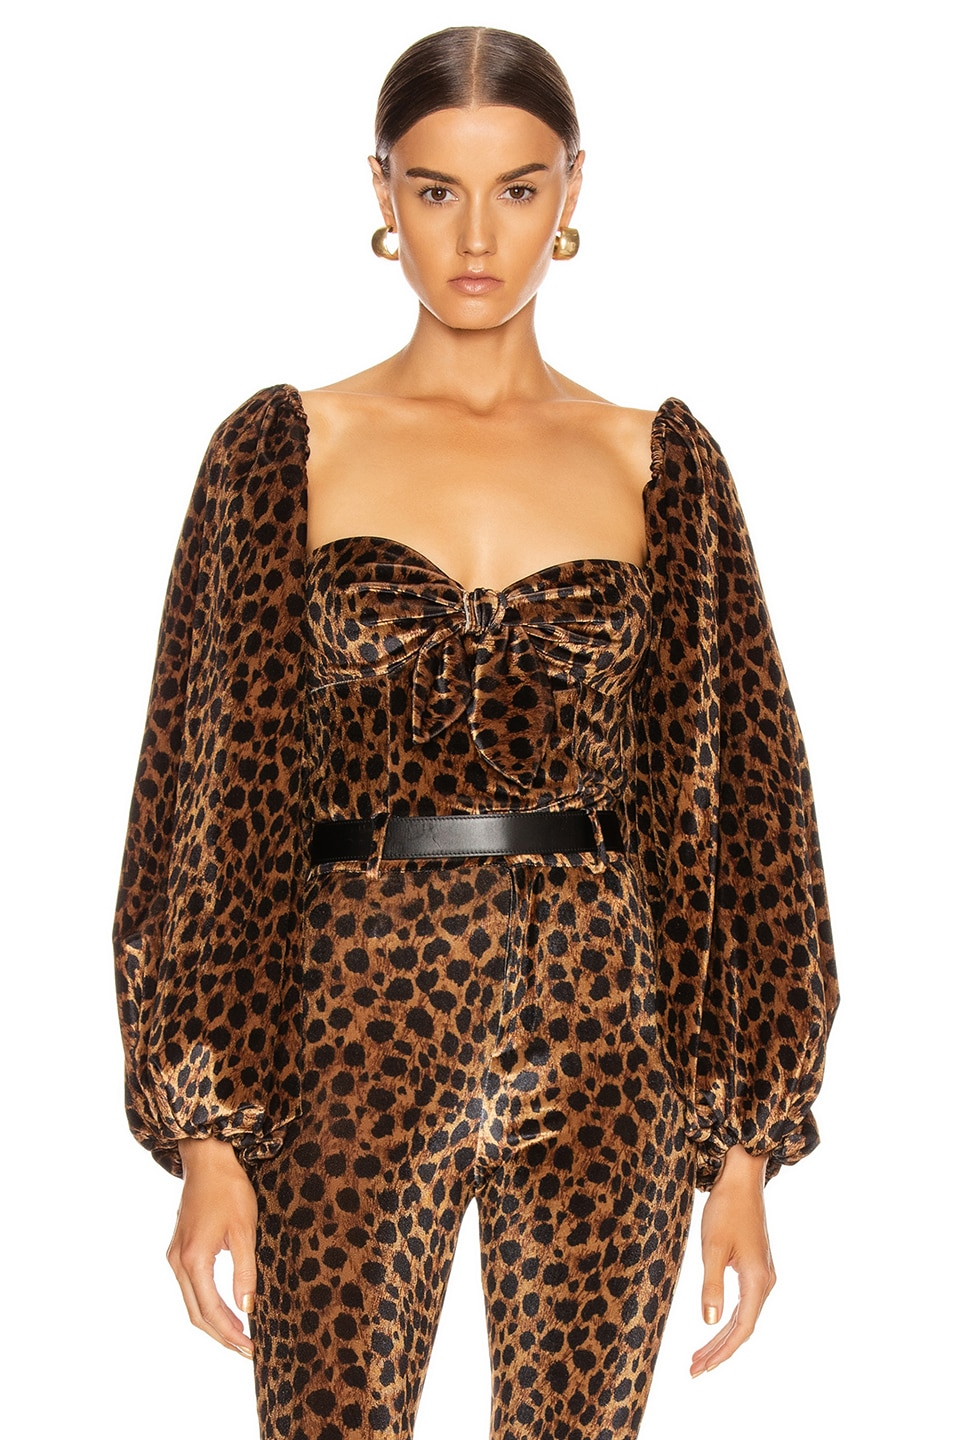 Attico Accessories Leopard Top